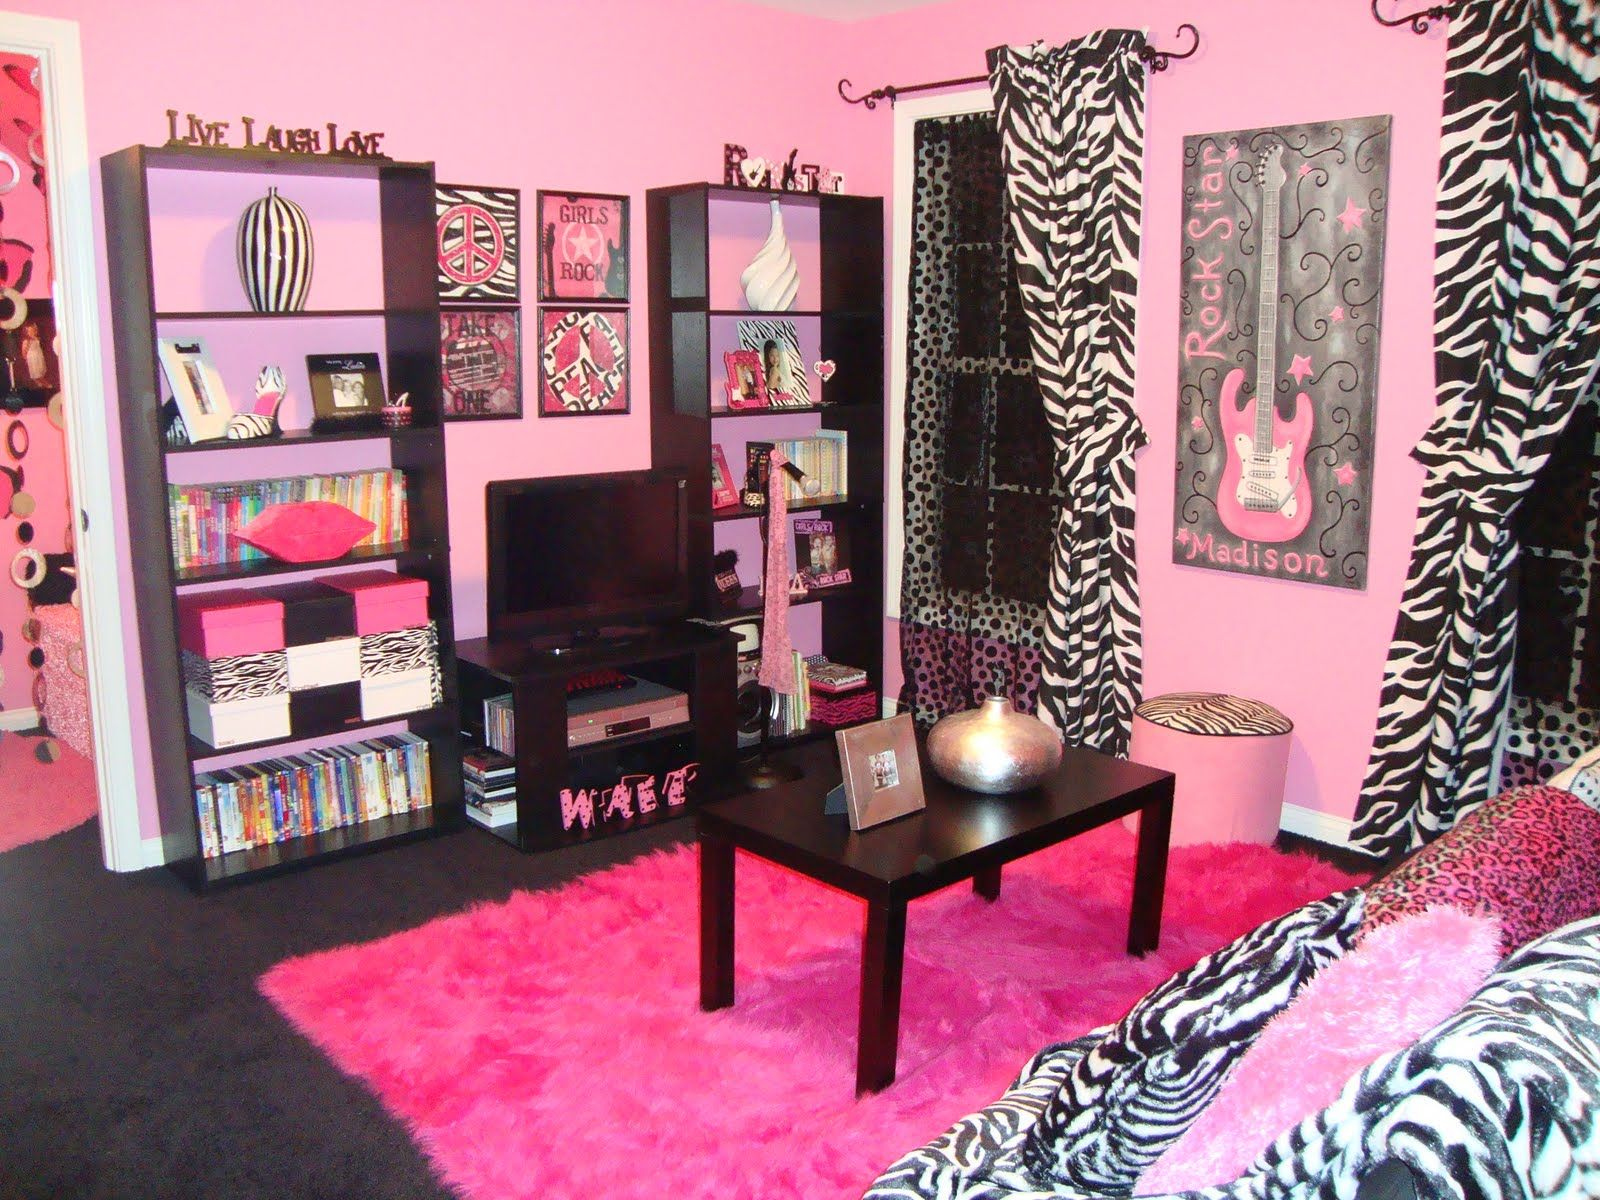 best 25 zebra bedrooms ideas on pinterest pink zebra bedrooms zebra bedroom designs and pink zebra rooms